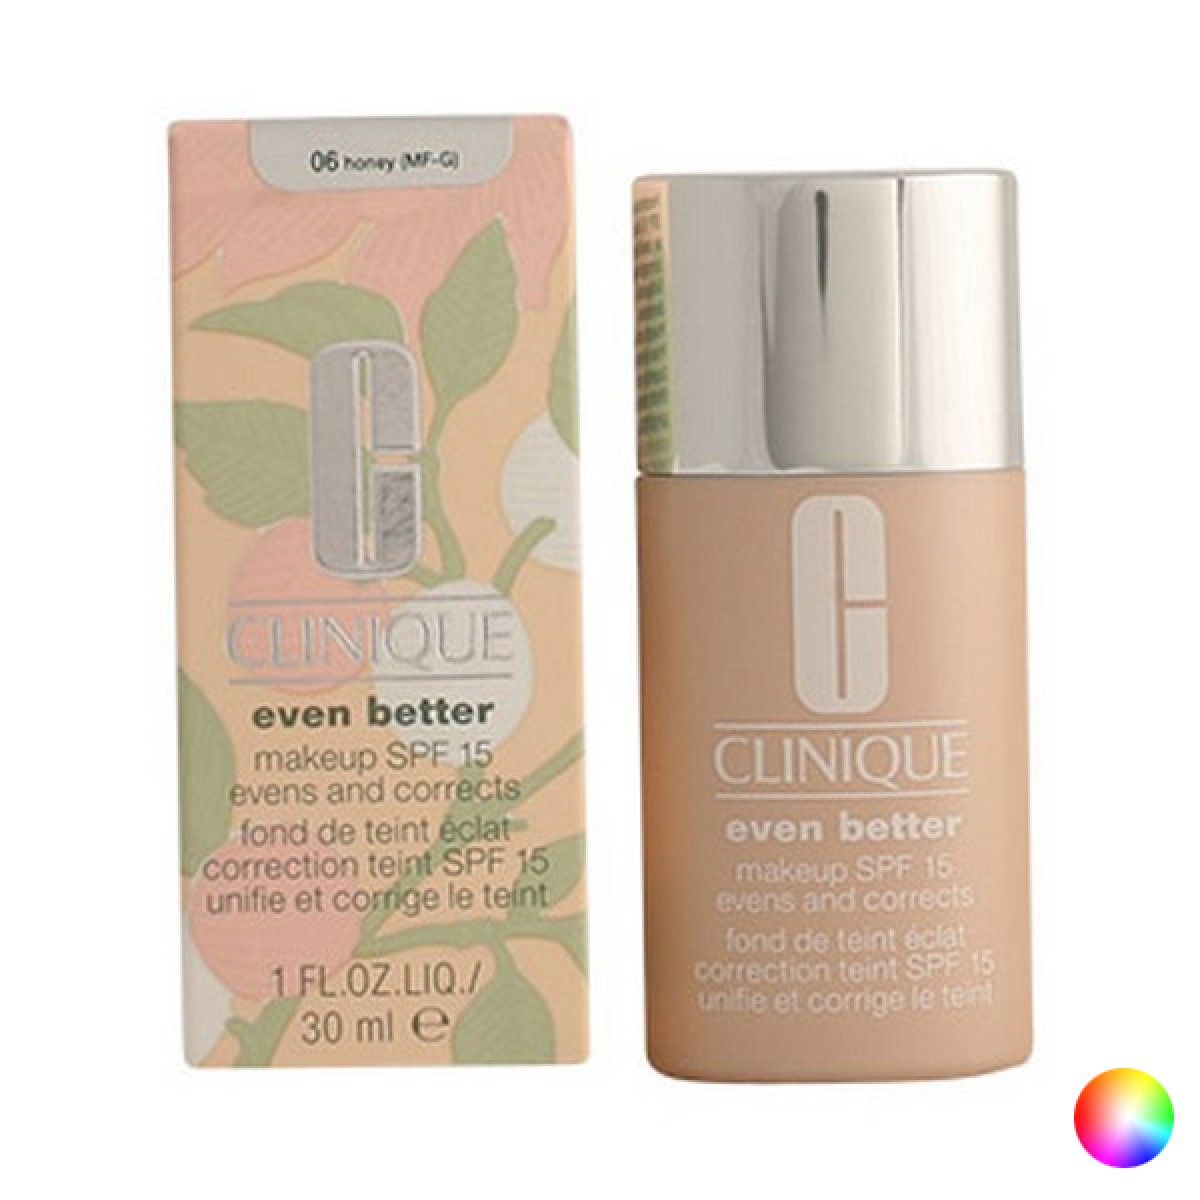 Anti-plet makeup Even Better Clinique - Farve: 46 - golden neutral 30 ml